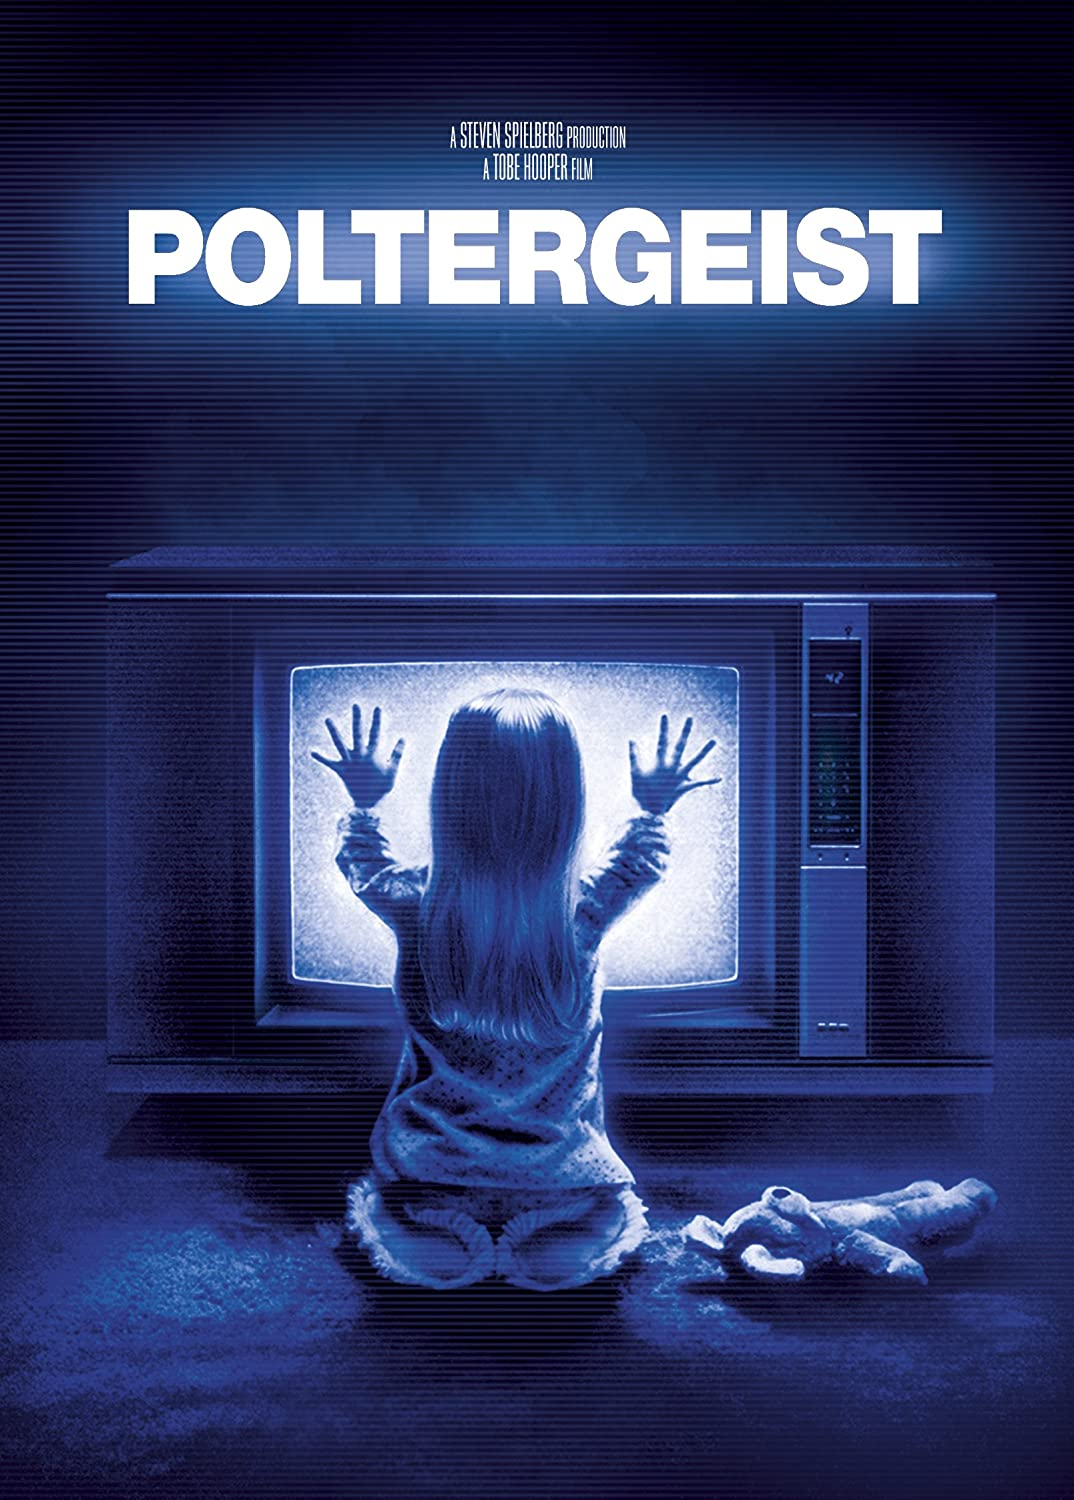 how to become a poltergeist